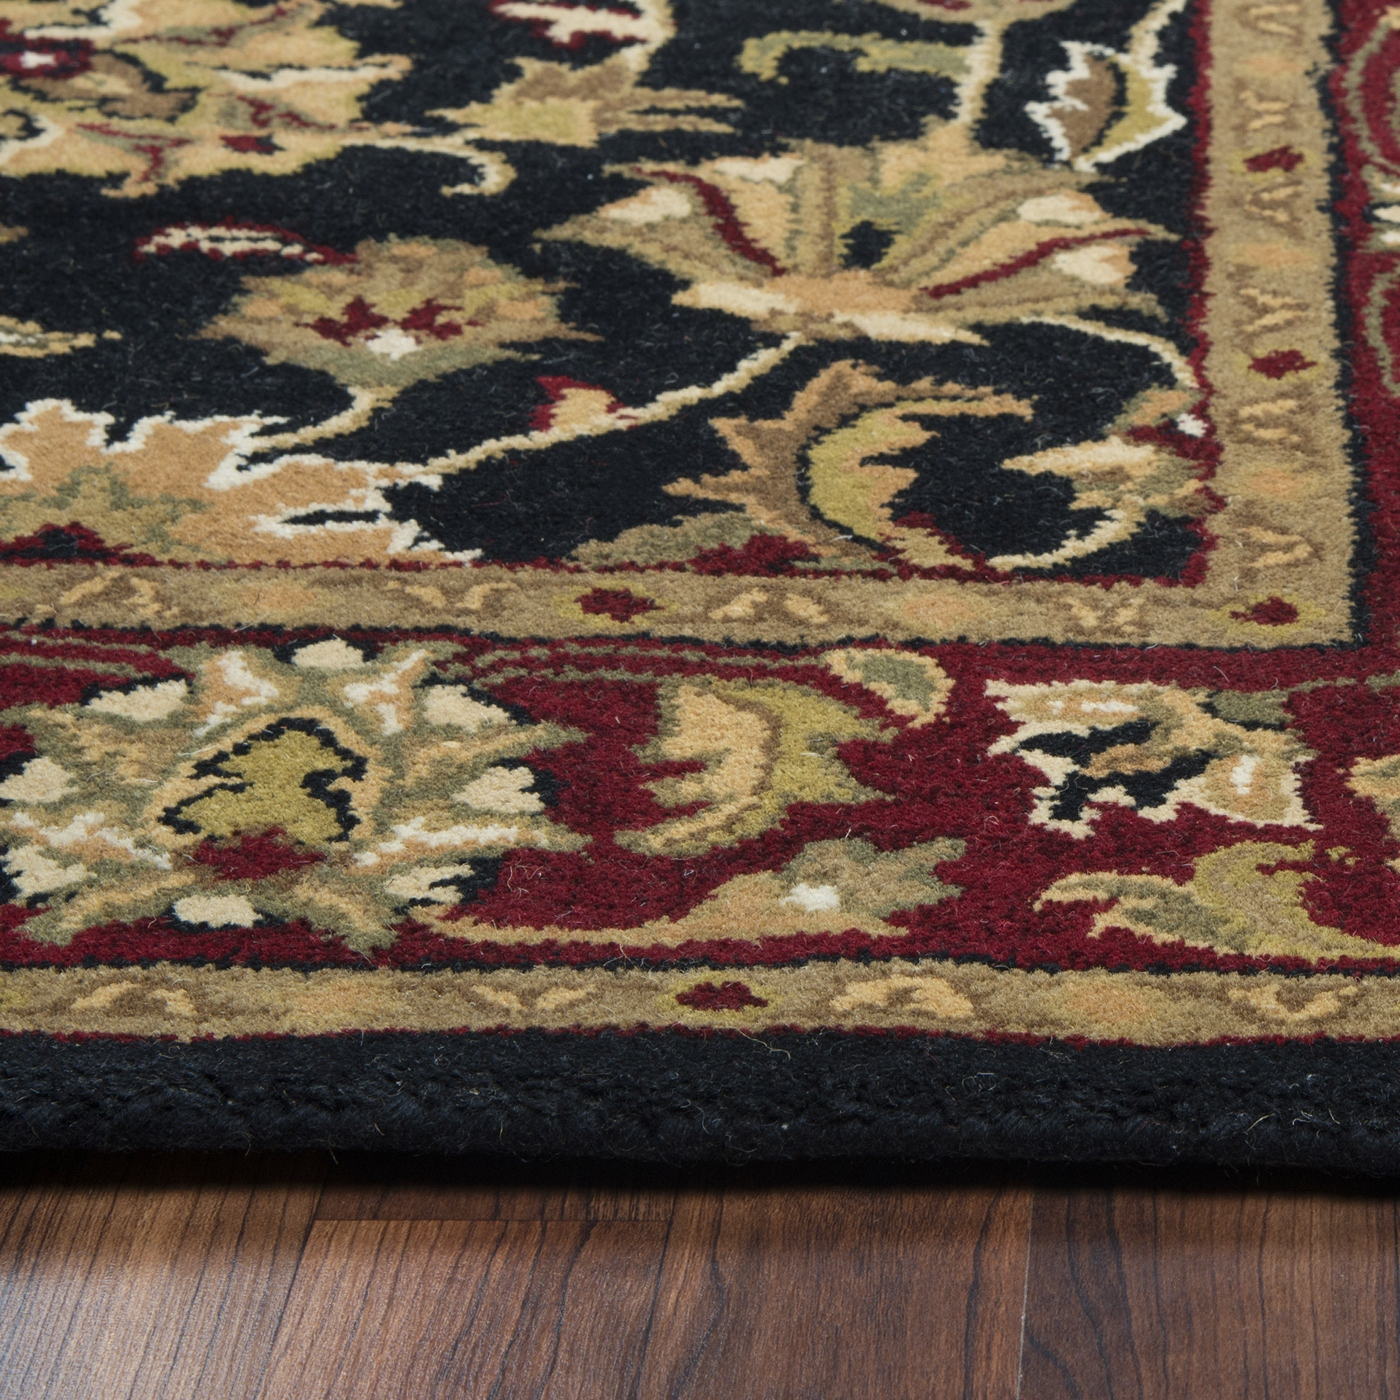 Volare Ornate Vine Pattern Wool Runner Rug In Black